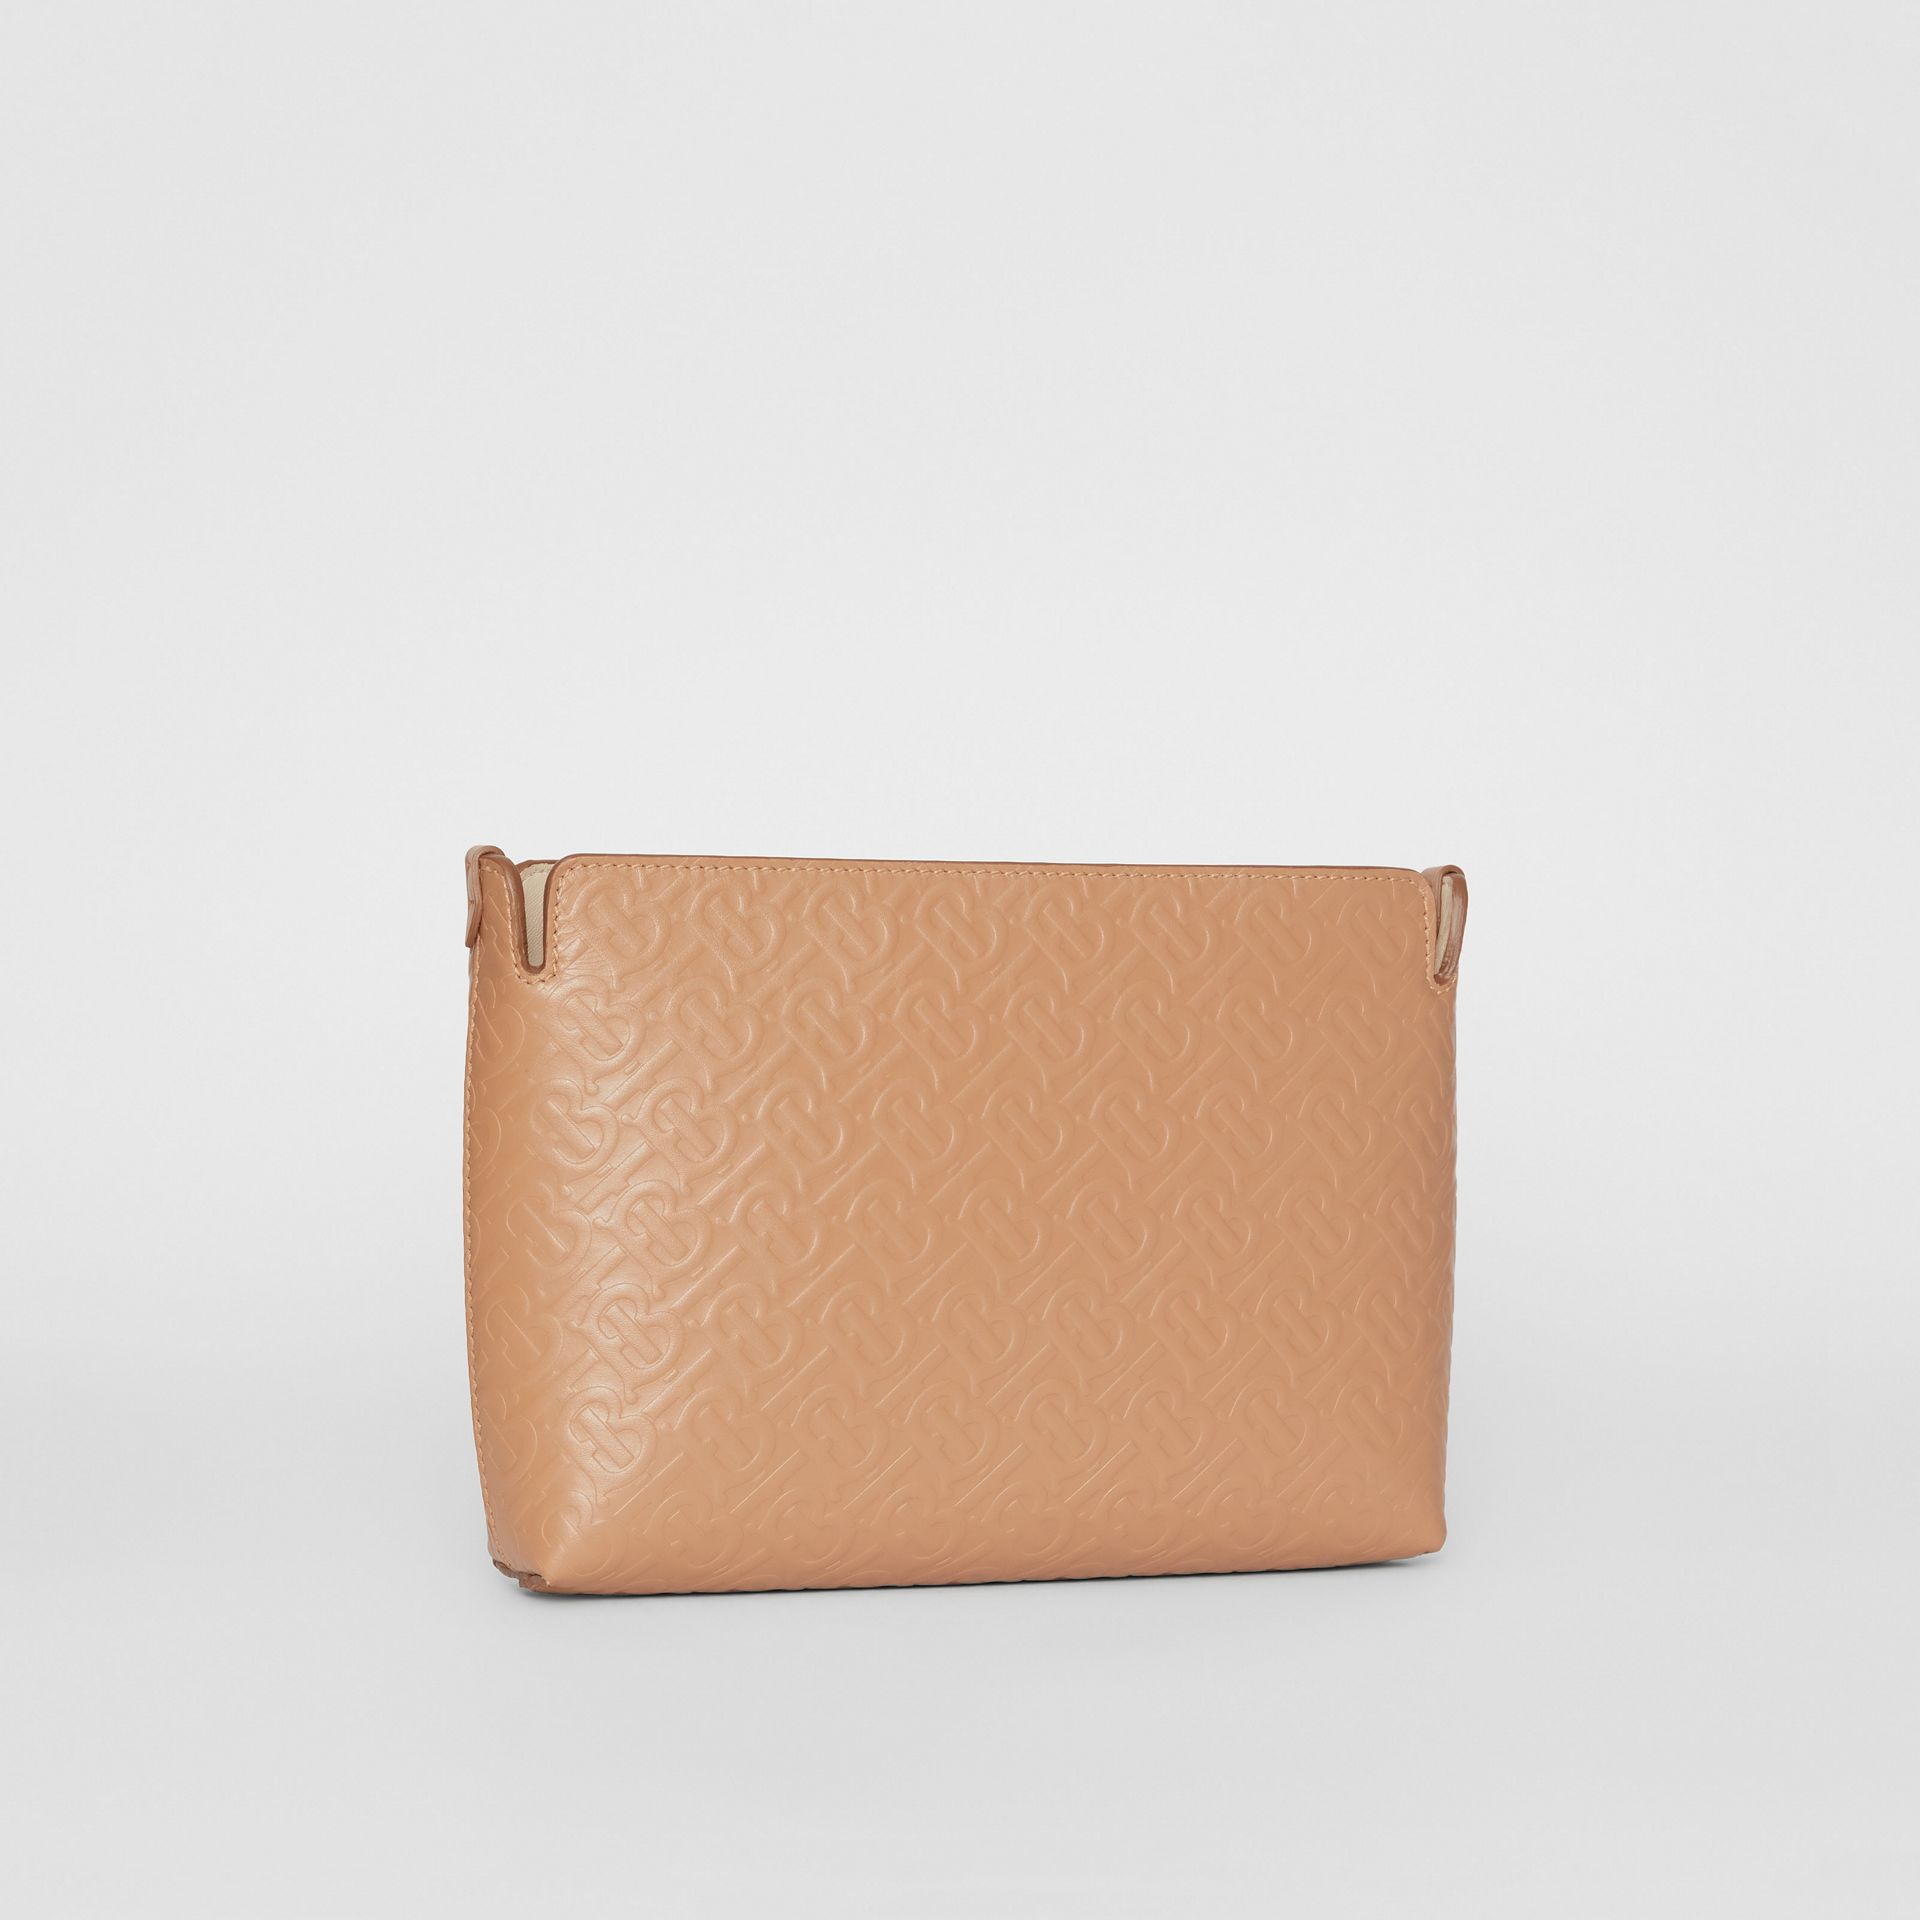 Medium Monogram Leather Clutch in Light Camel - Women | Burberry - gallery image 4